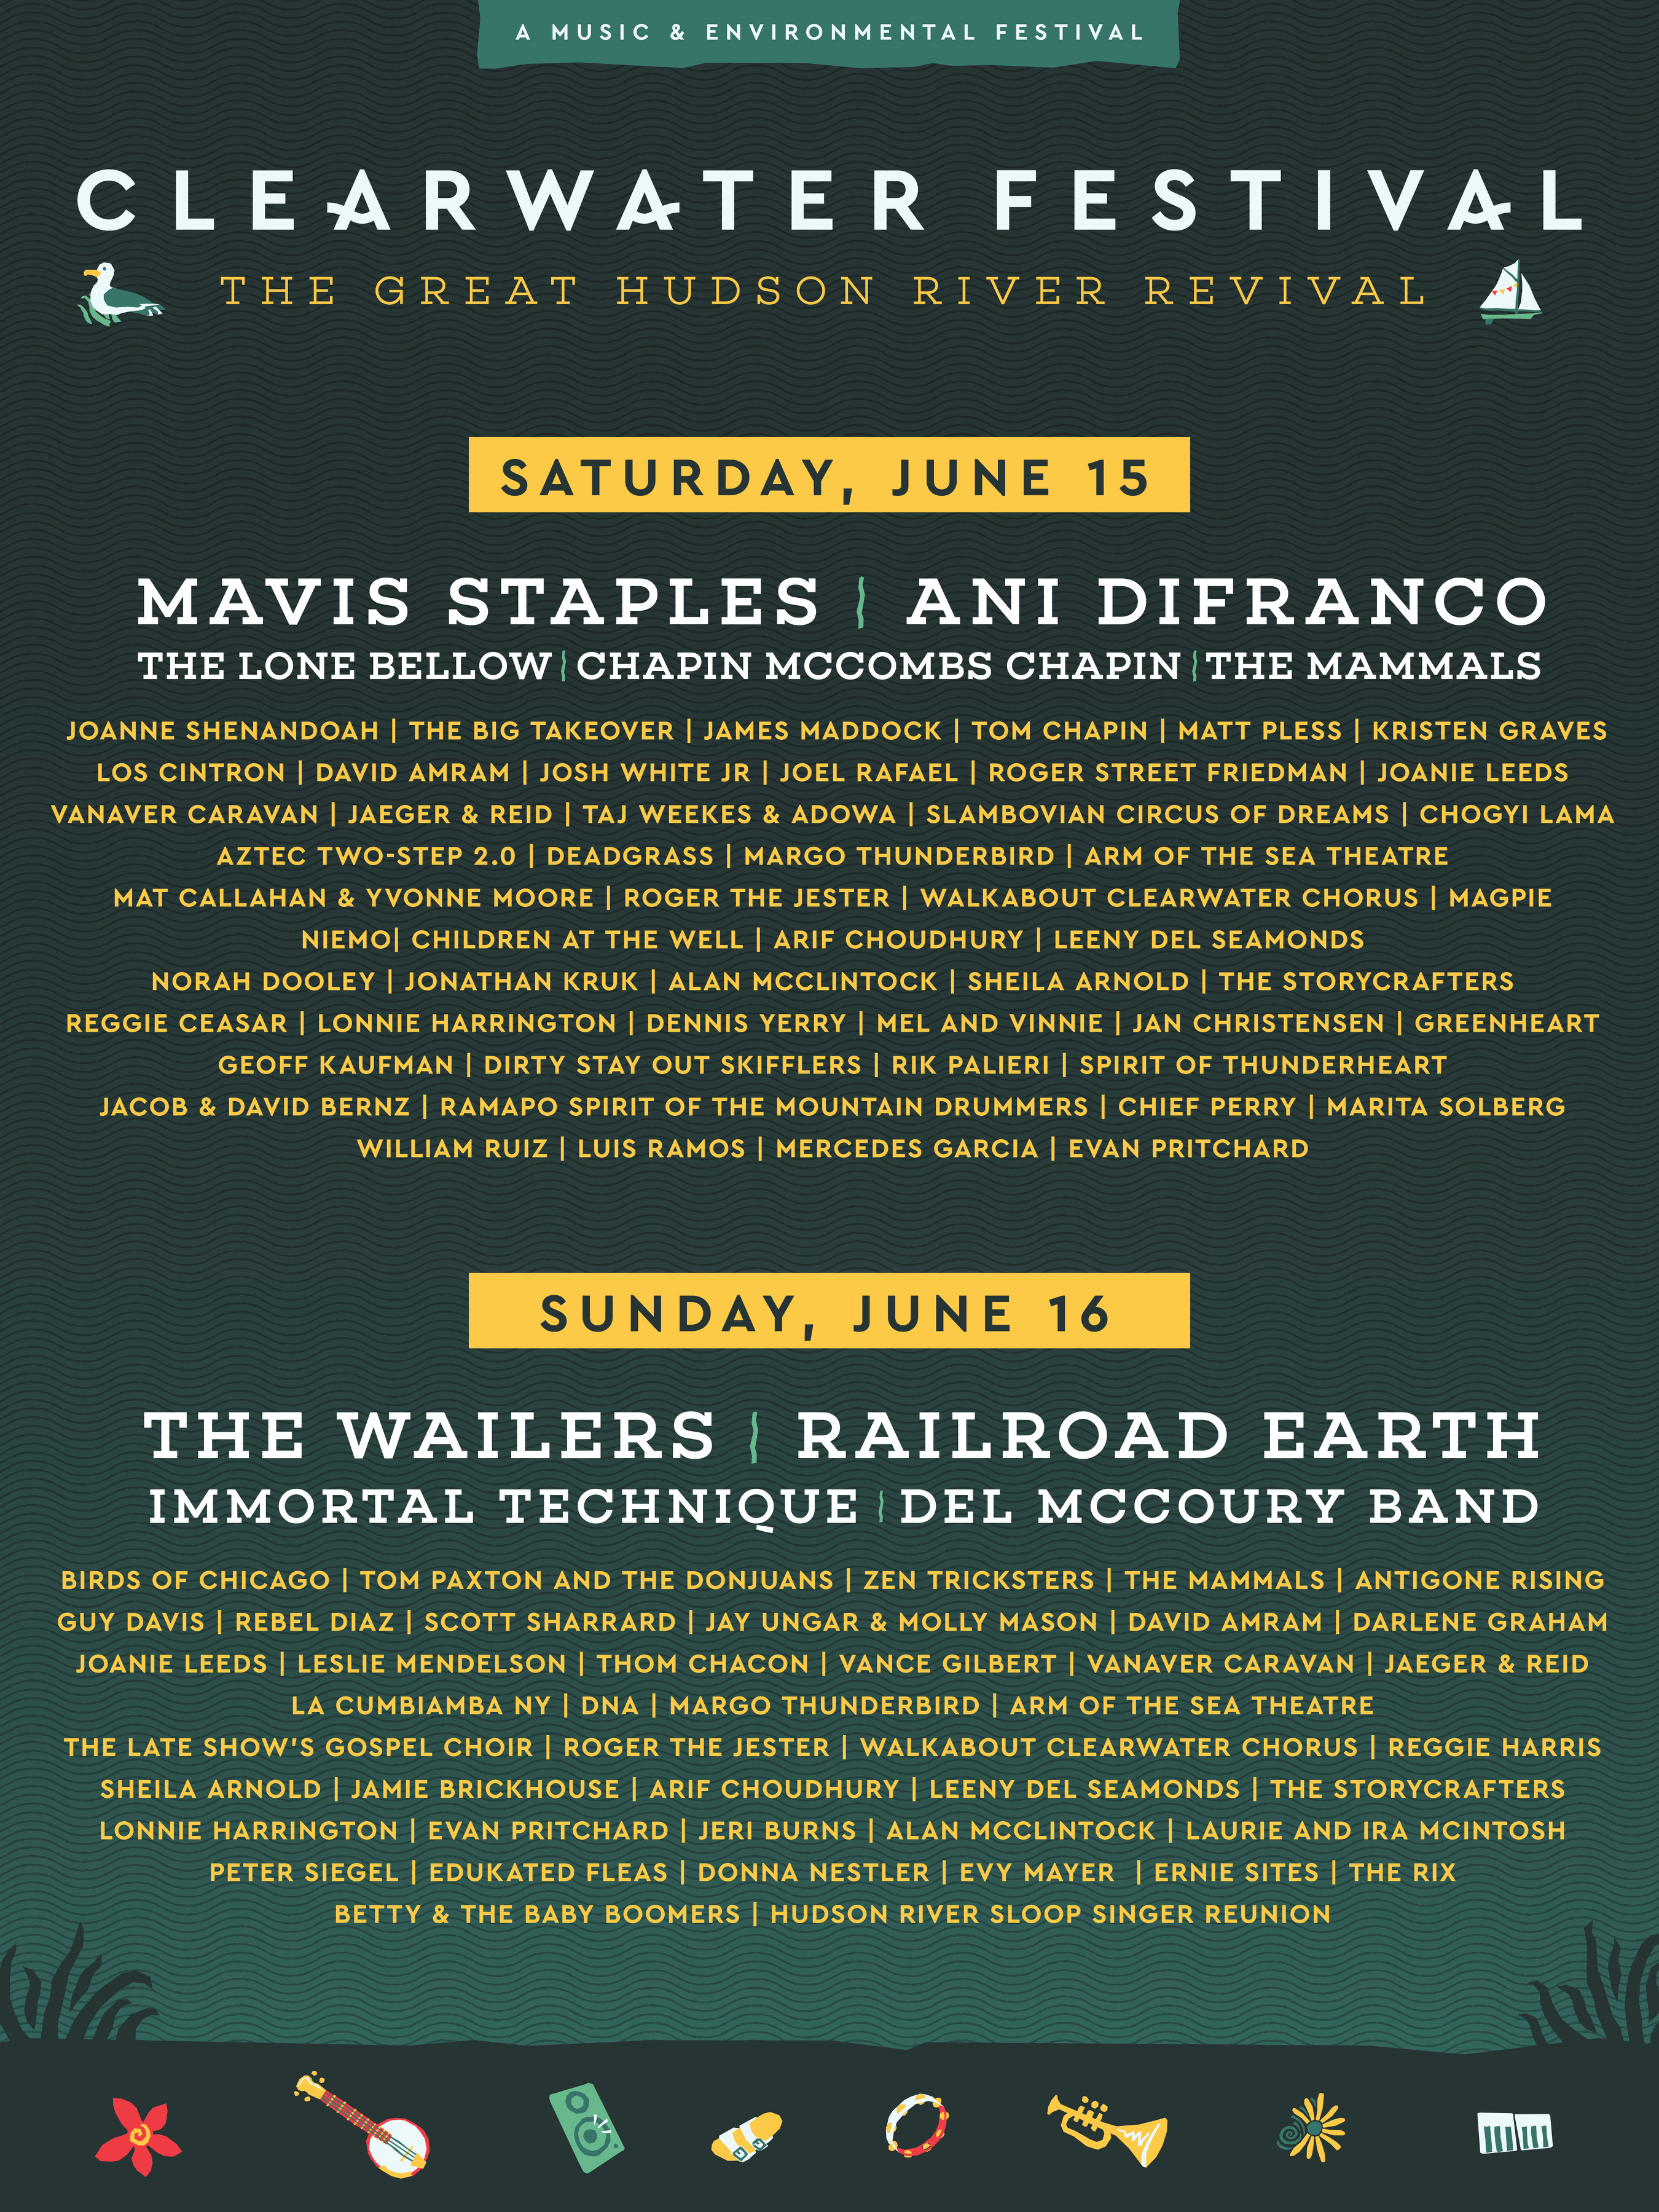 Clearwater Festival 2020 Schedule Schedule – Clearwater's Great Hudson River Revival